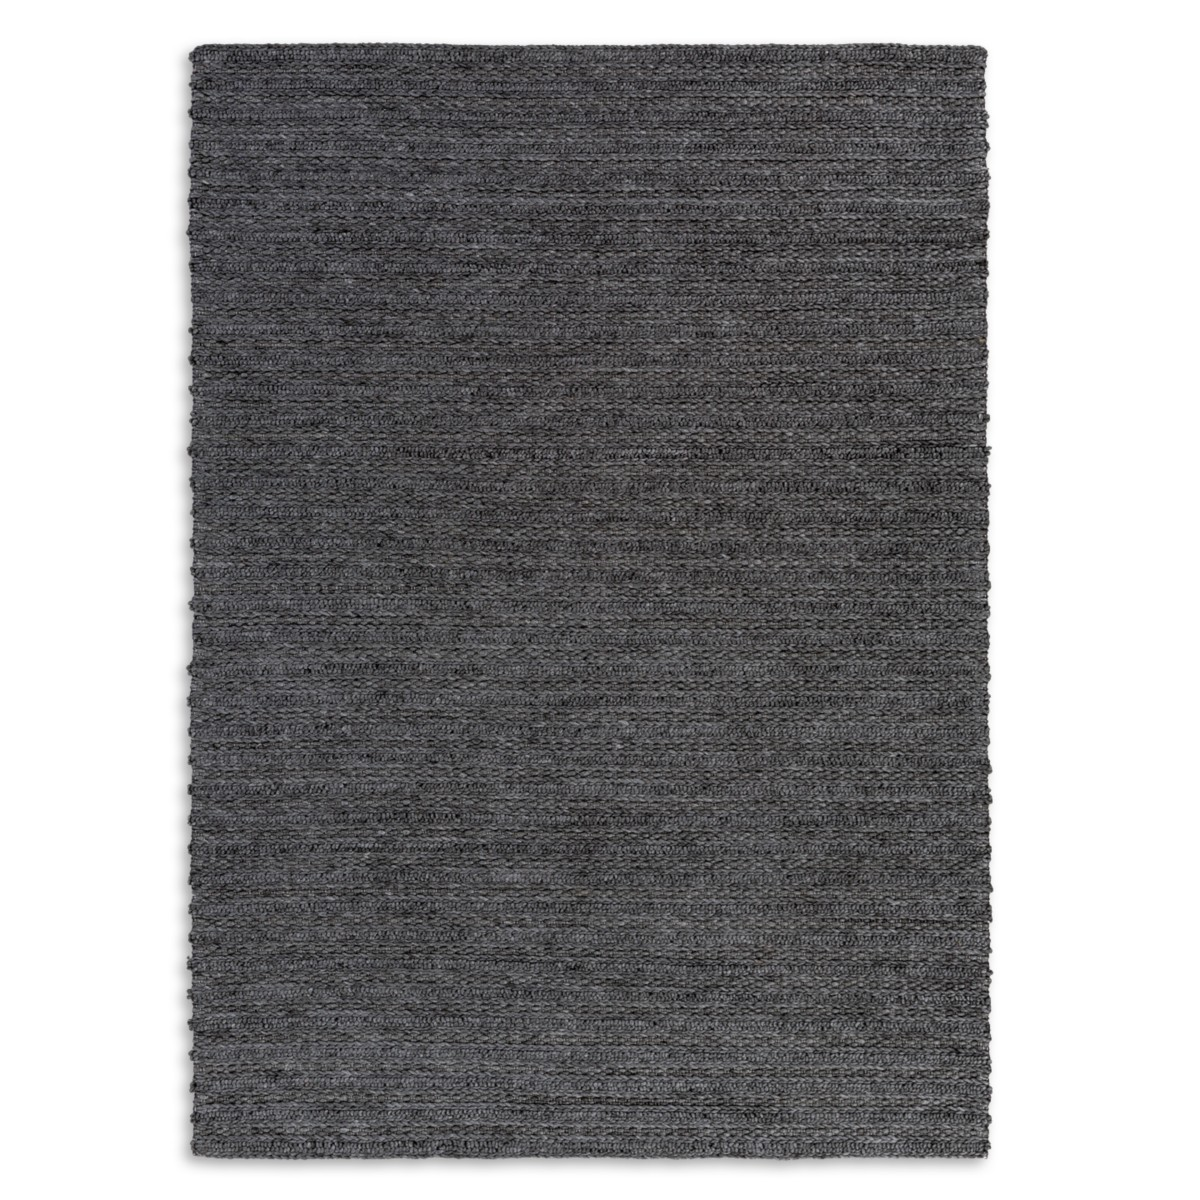 Tri-Knot Rug - Charcoal